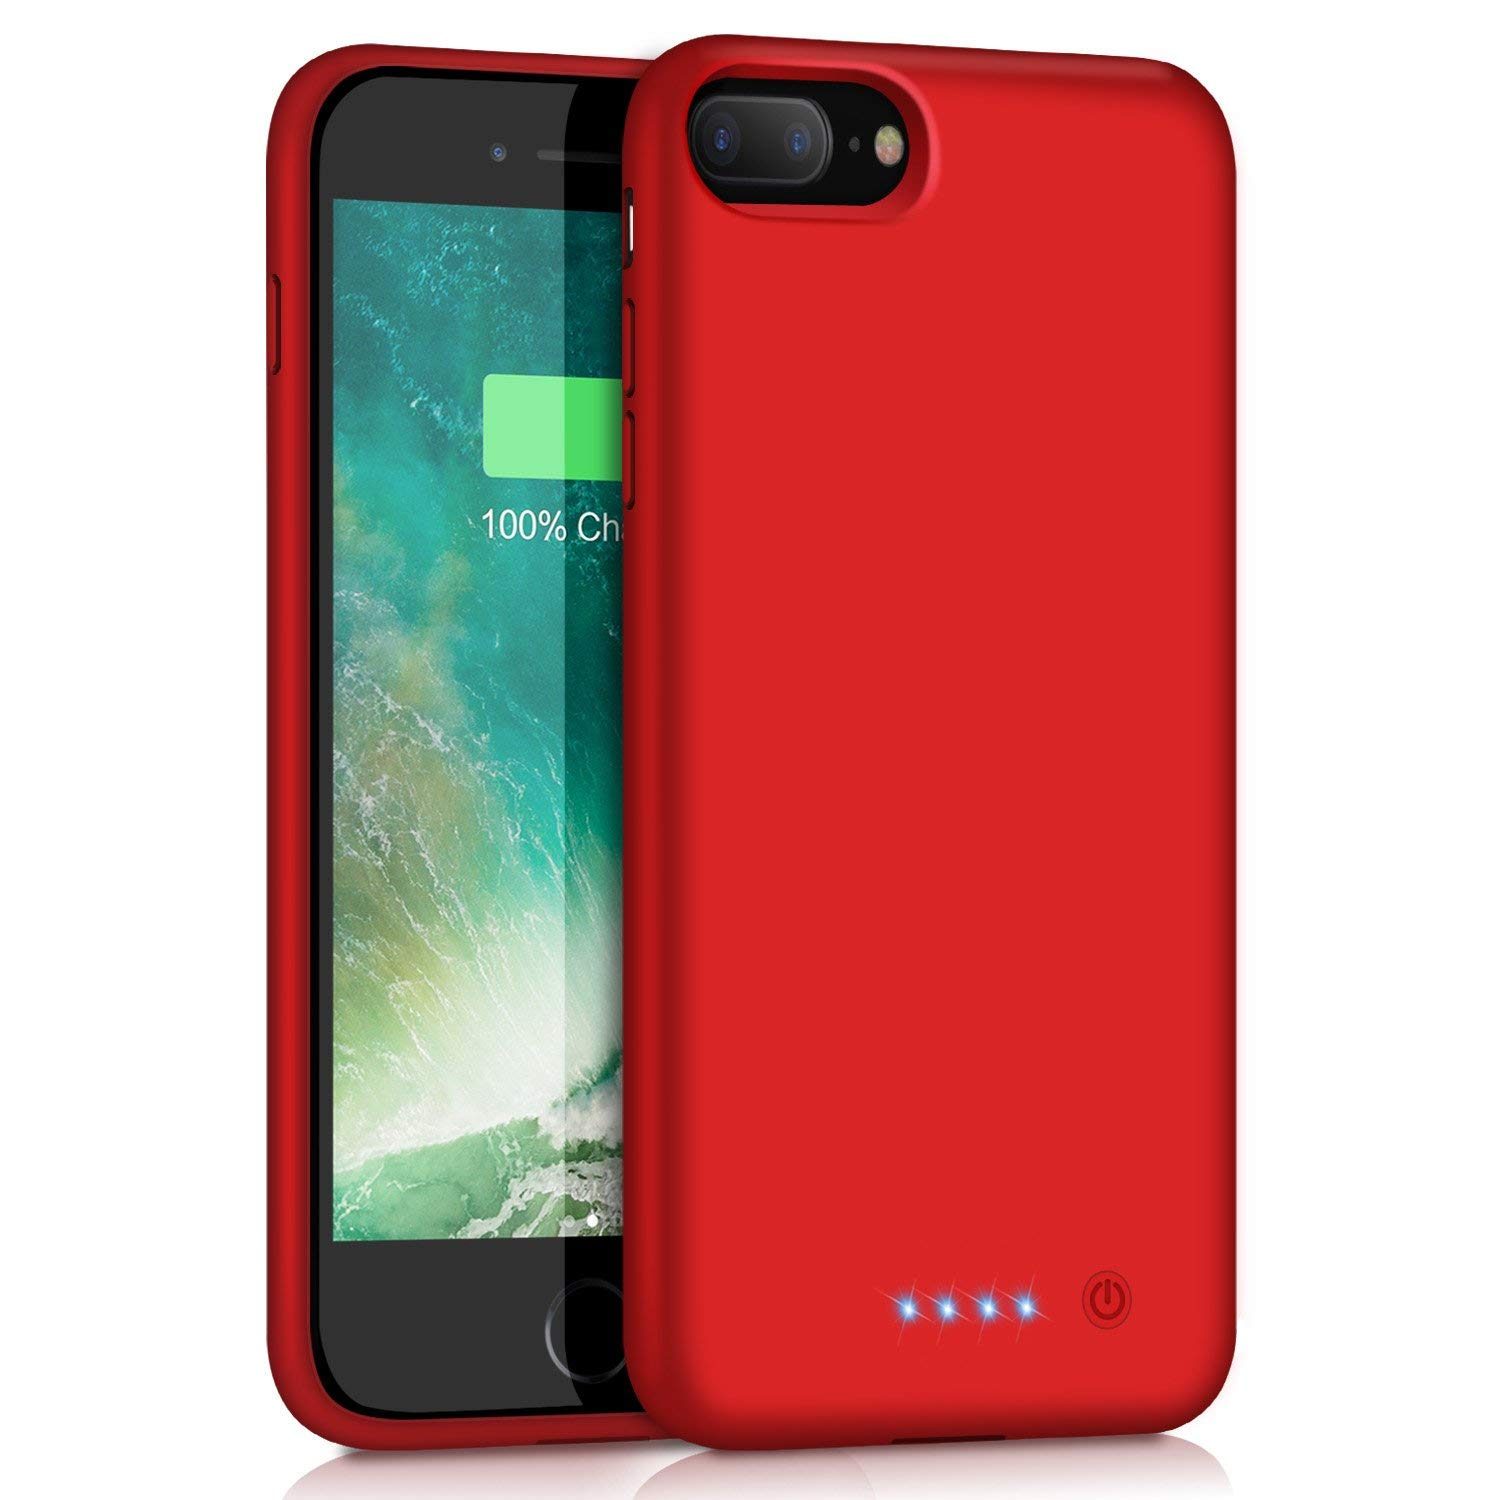 Sporting an iPhone 7 Plus? Here are some great battery cases for it!